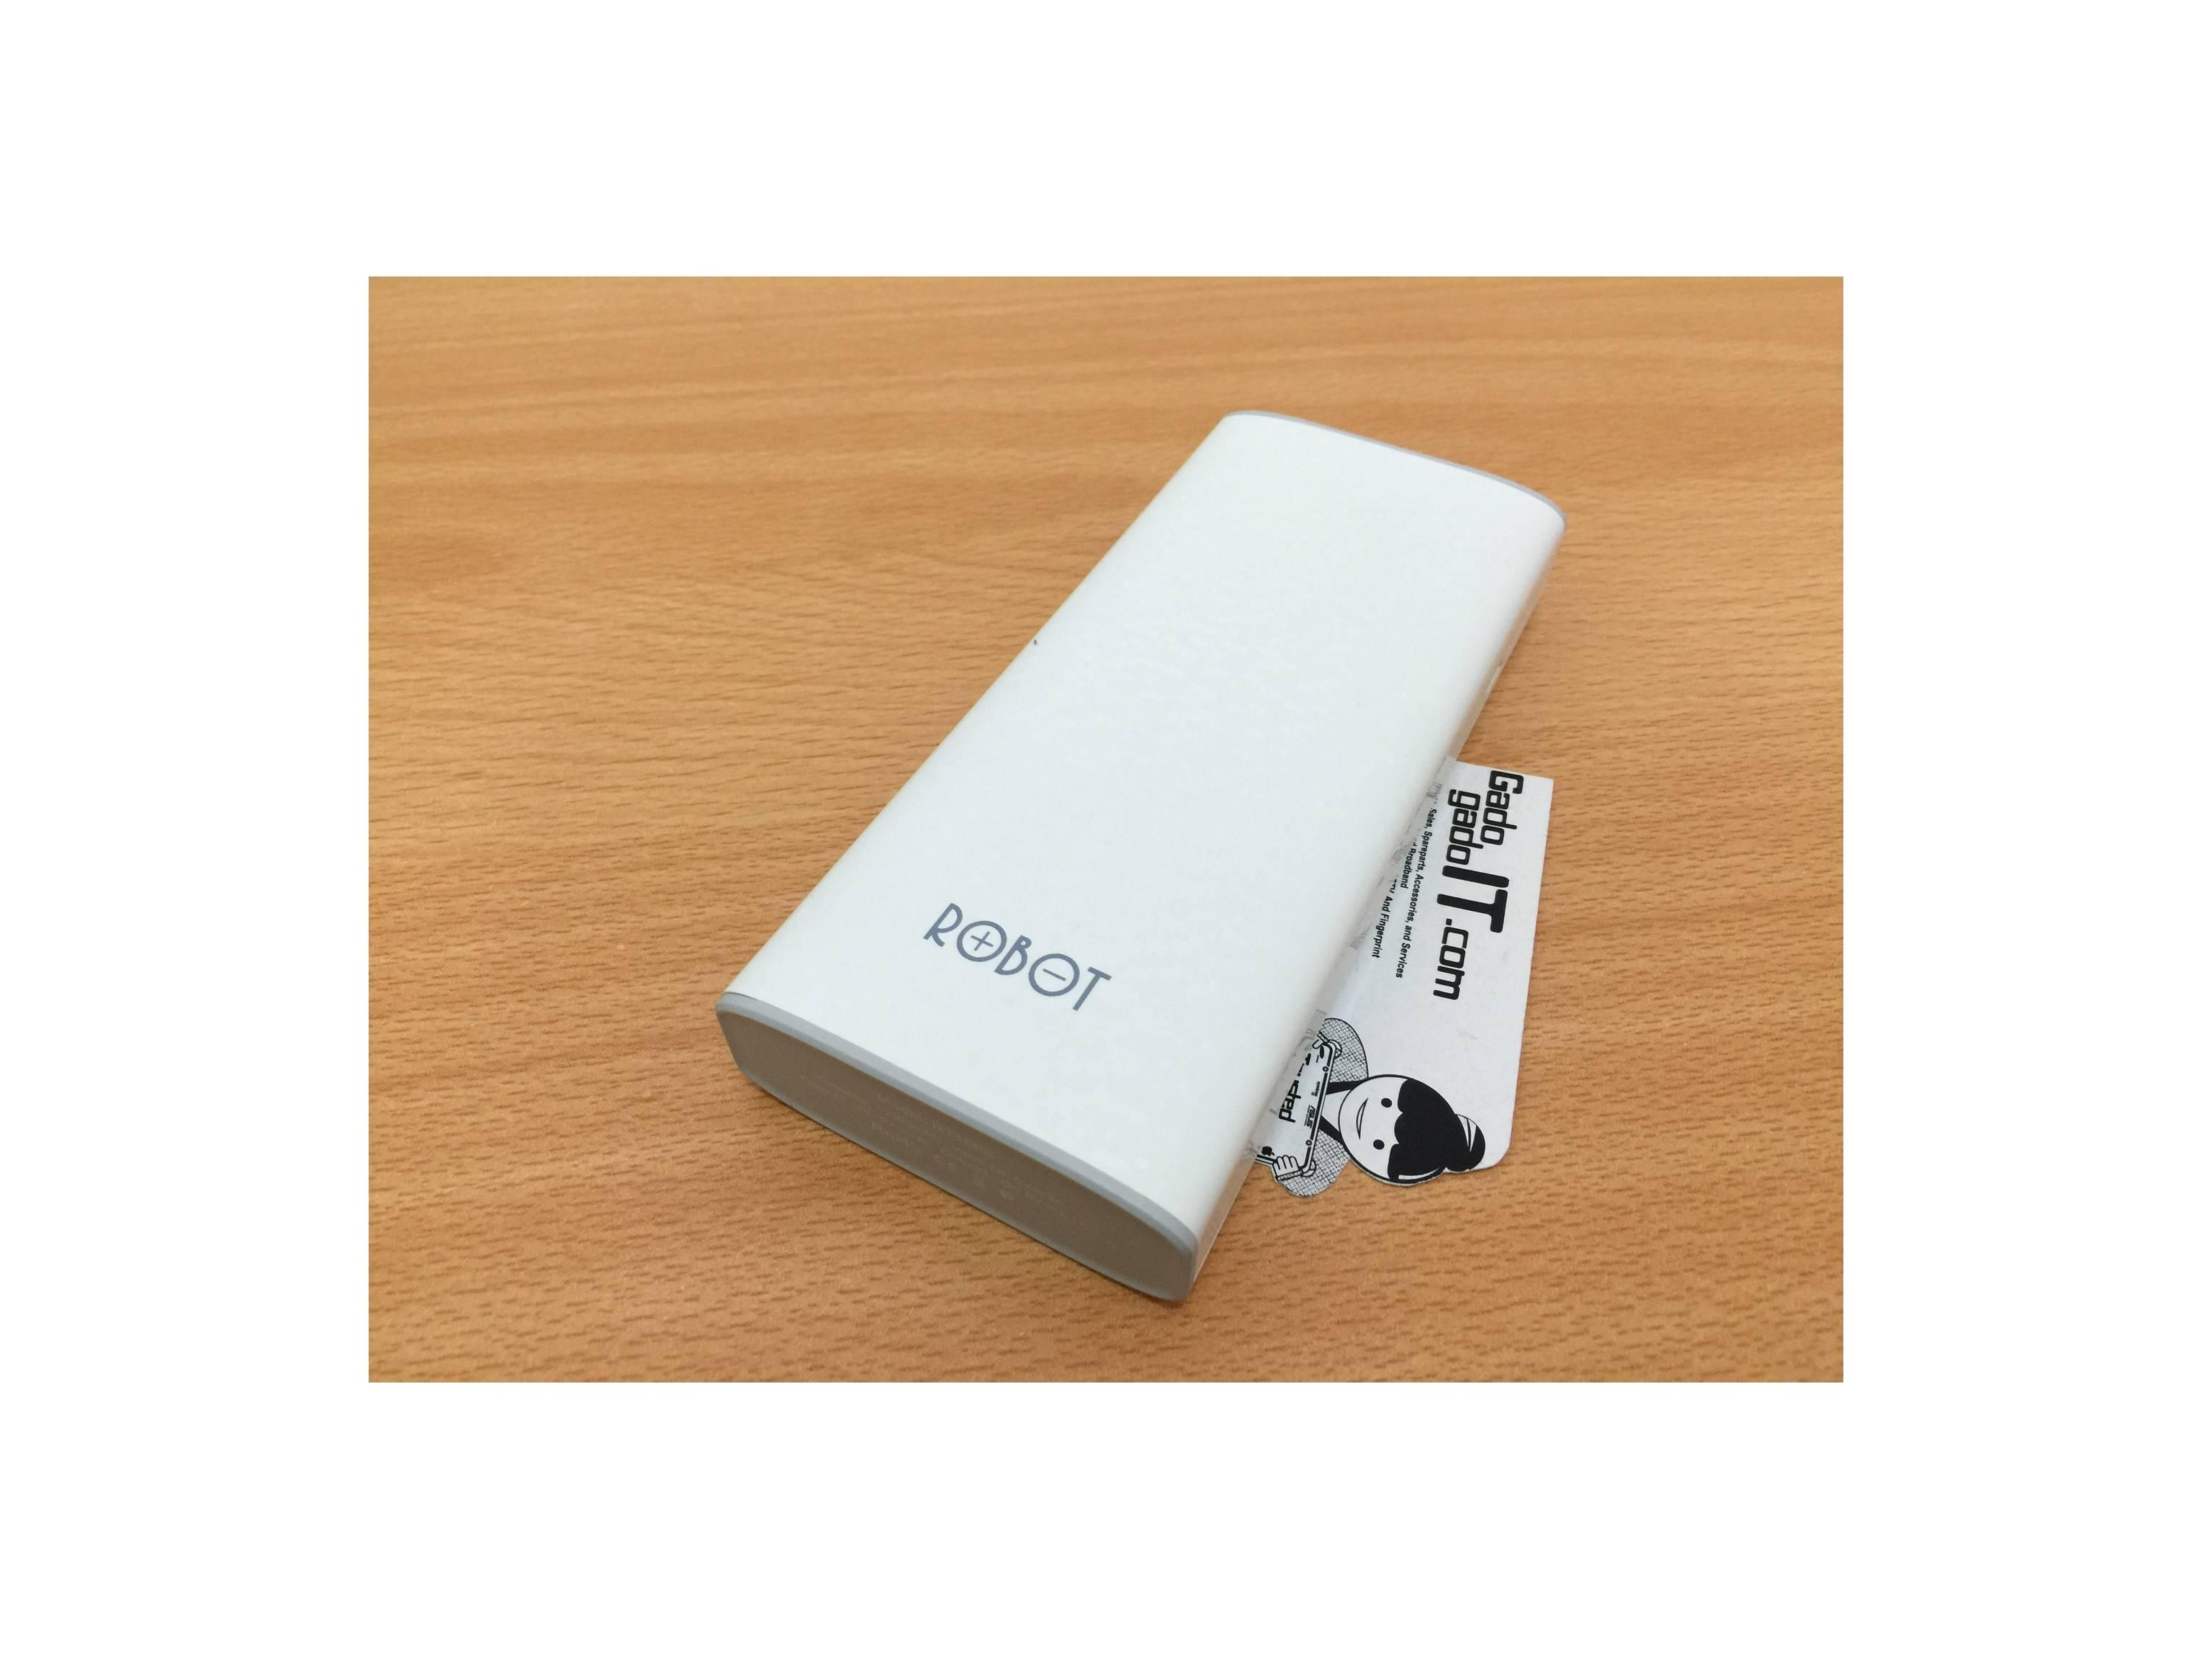 Powerbank VIVAN Robot RT100S mah With Shacking Switch RESMI